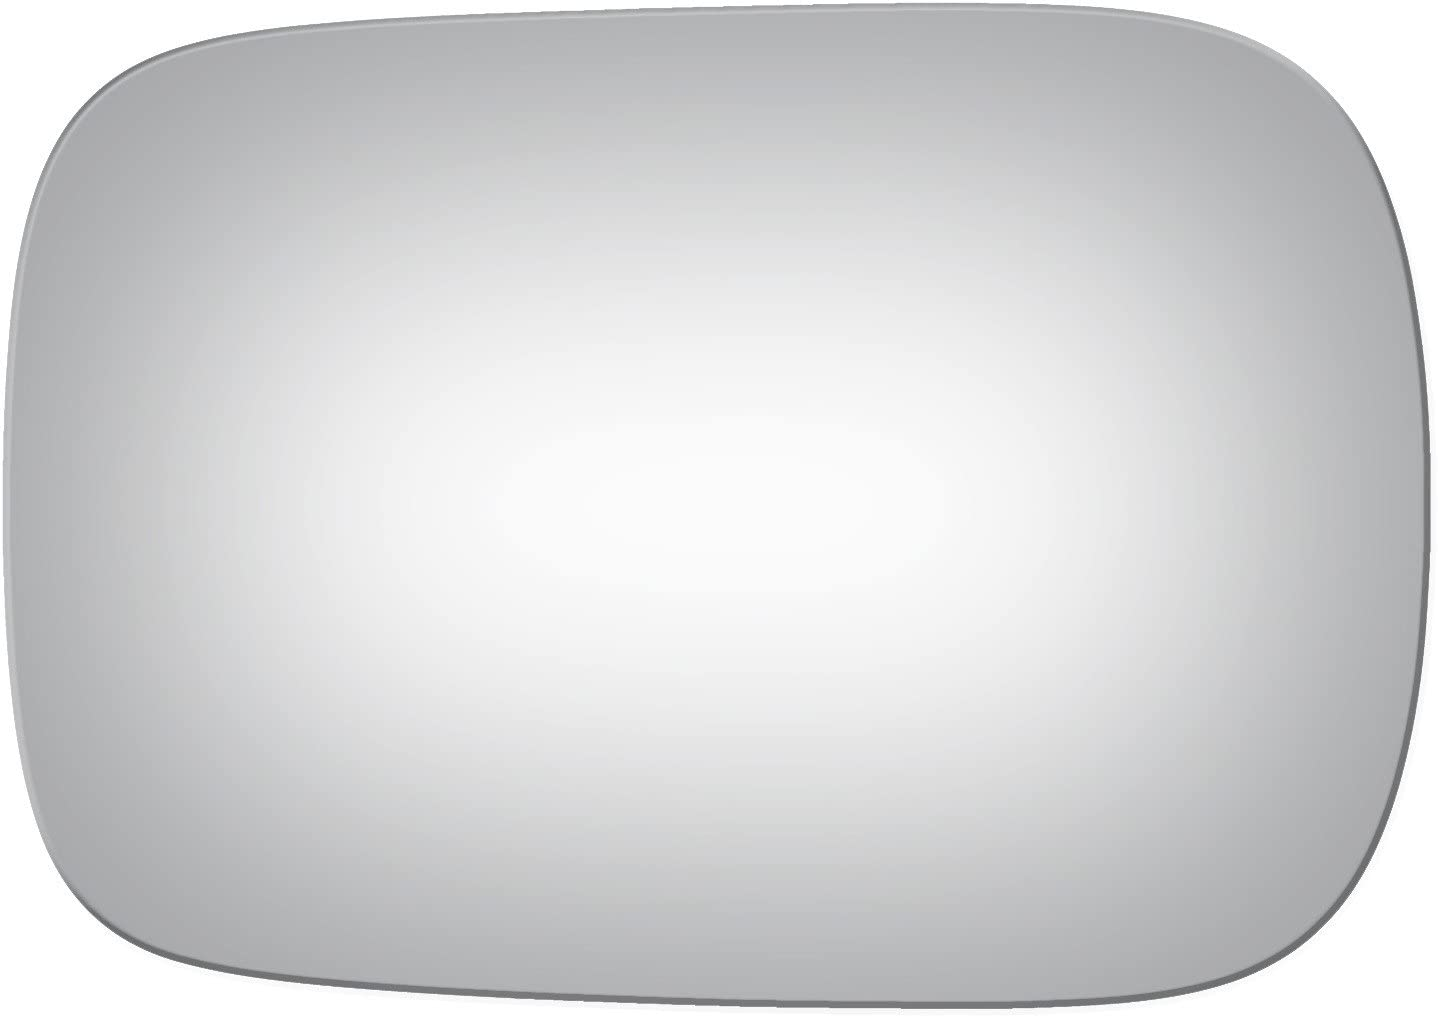 Heated Door Mirror Glass and Backing Plate LEFT fits 2001-2003 VOLVO S60 V70